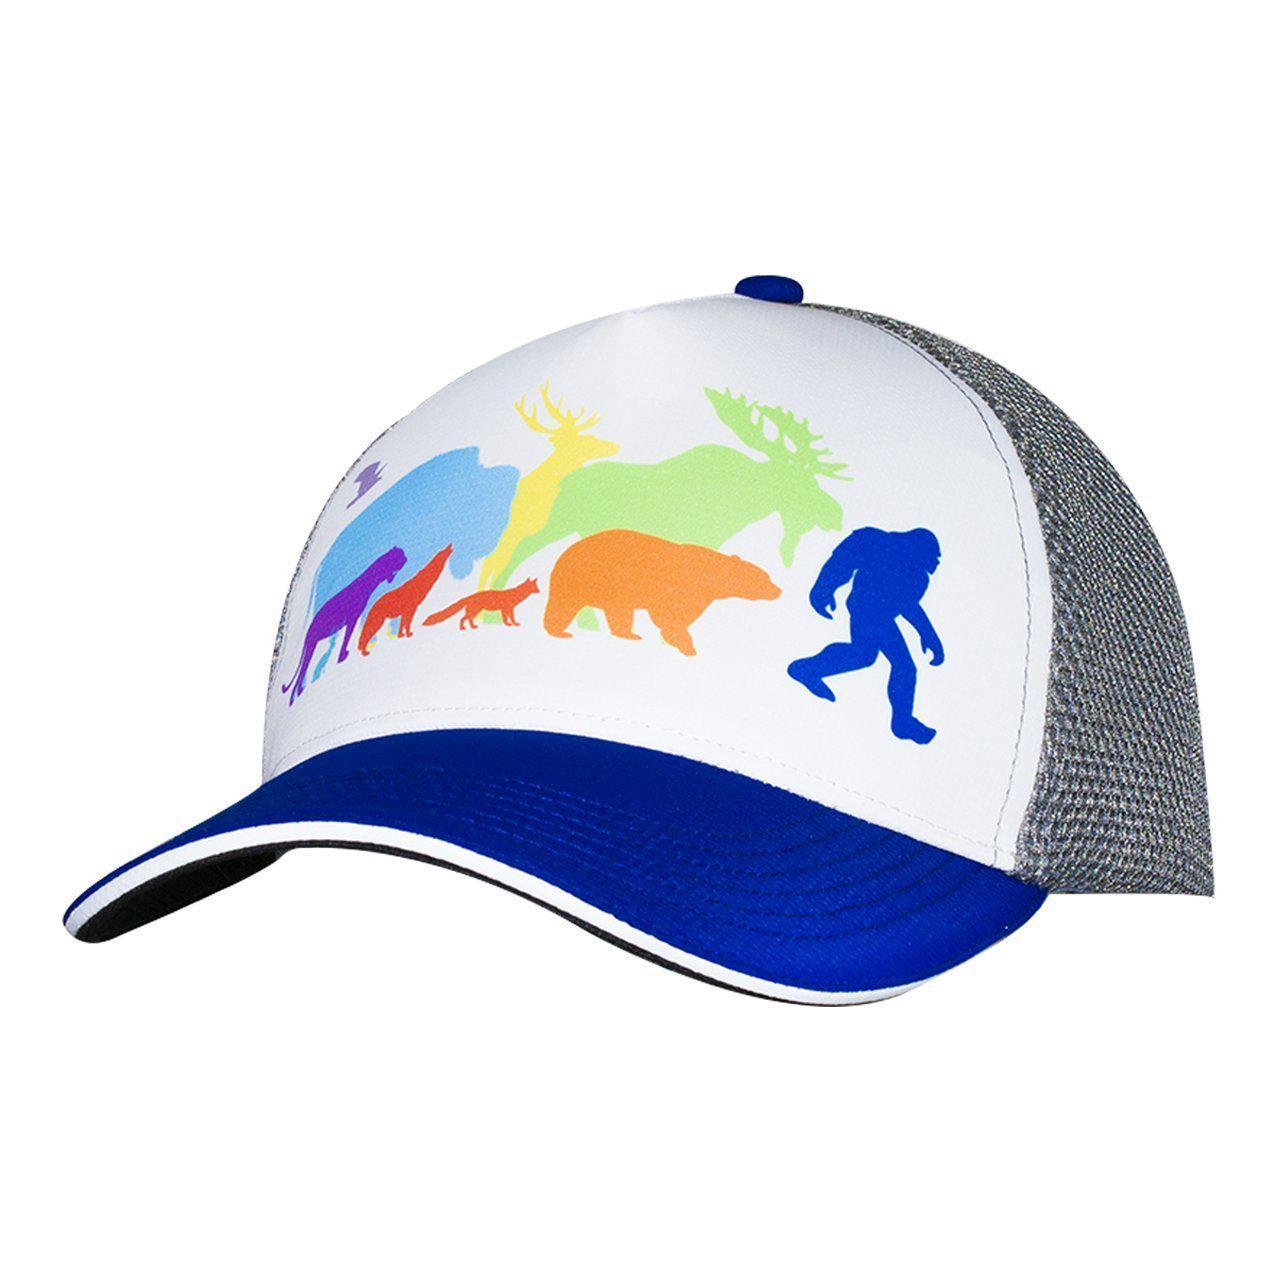 Headsweats Bigfoot Trucker Hat-Clothing Accessories-Amazon-Mountain Yeti-2 Foot Adventures